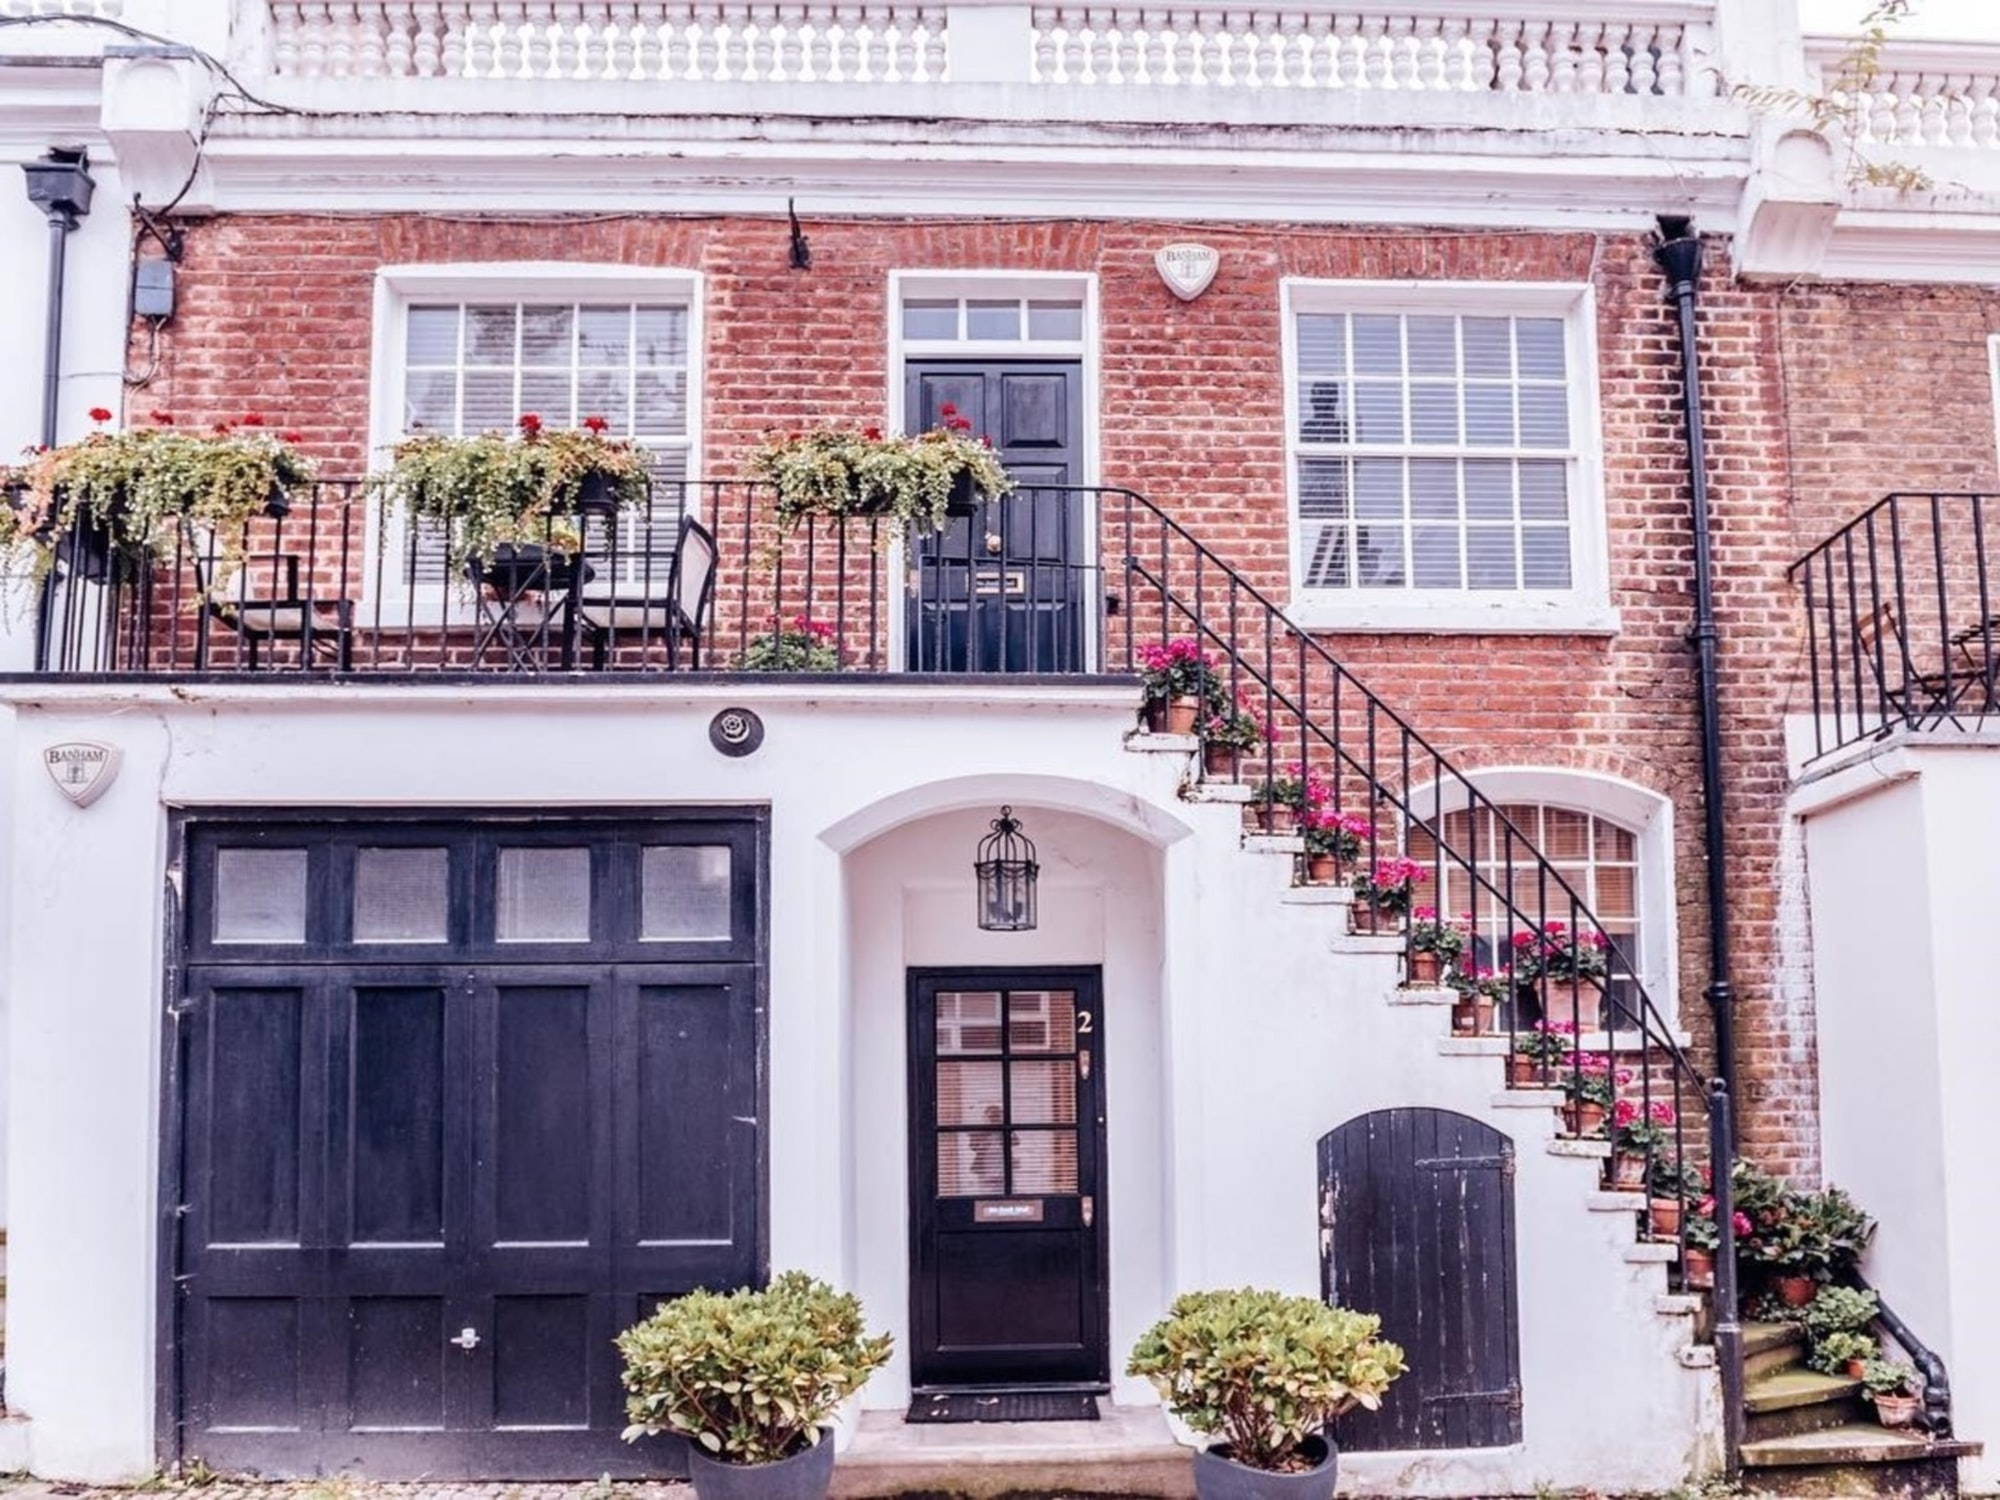 UK house prices forecast to rise by up to 3.5% p.a. from 2022 - 2024